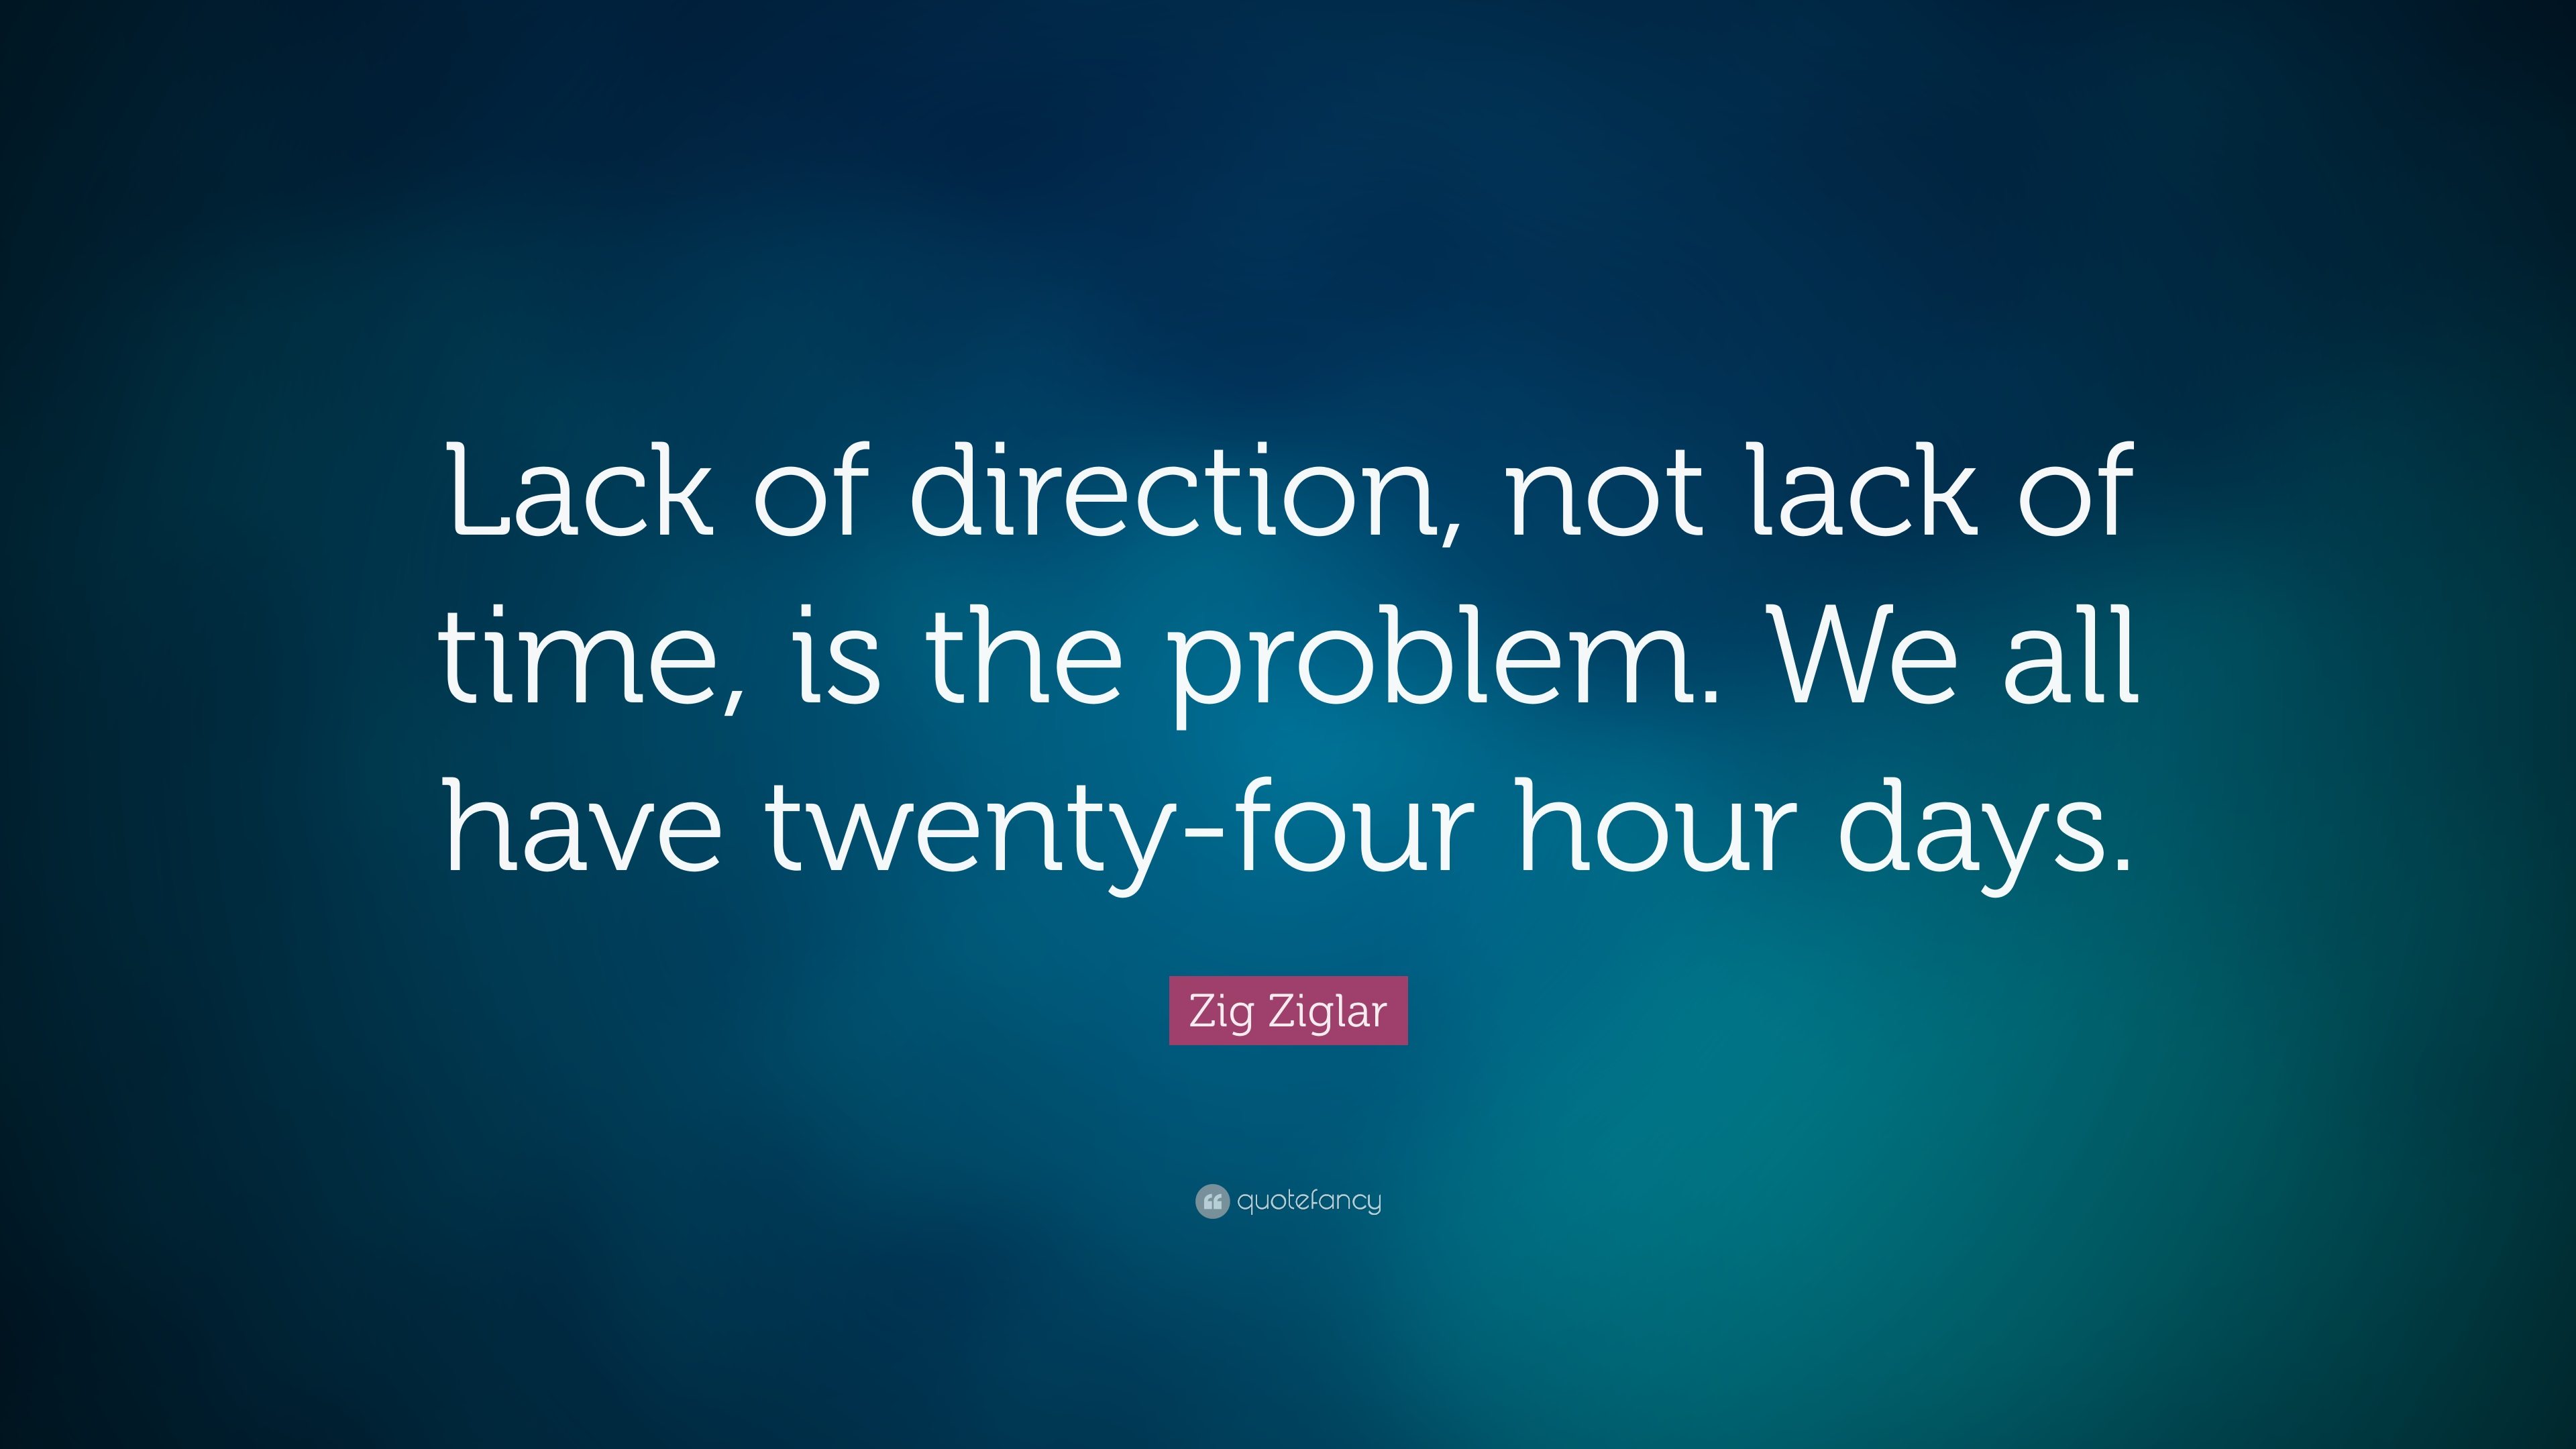 Zig ziglar quote lack of direction not lack of time is the